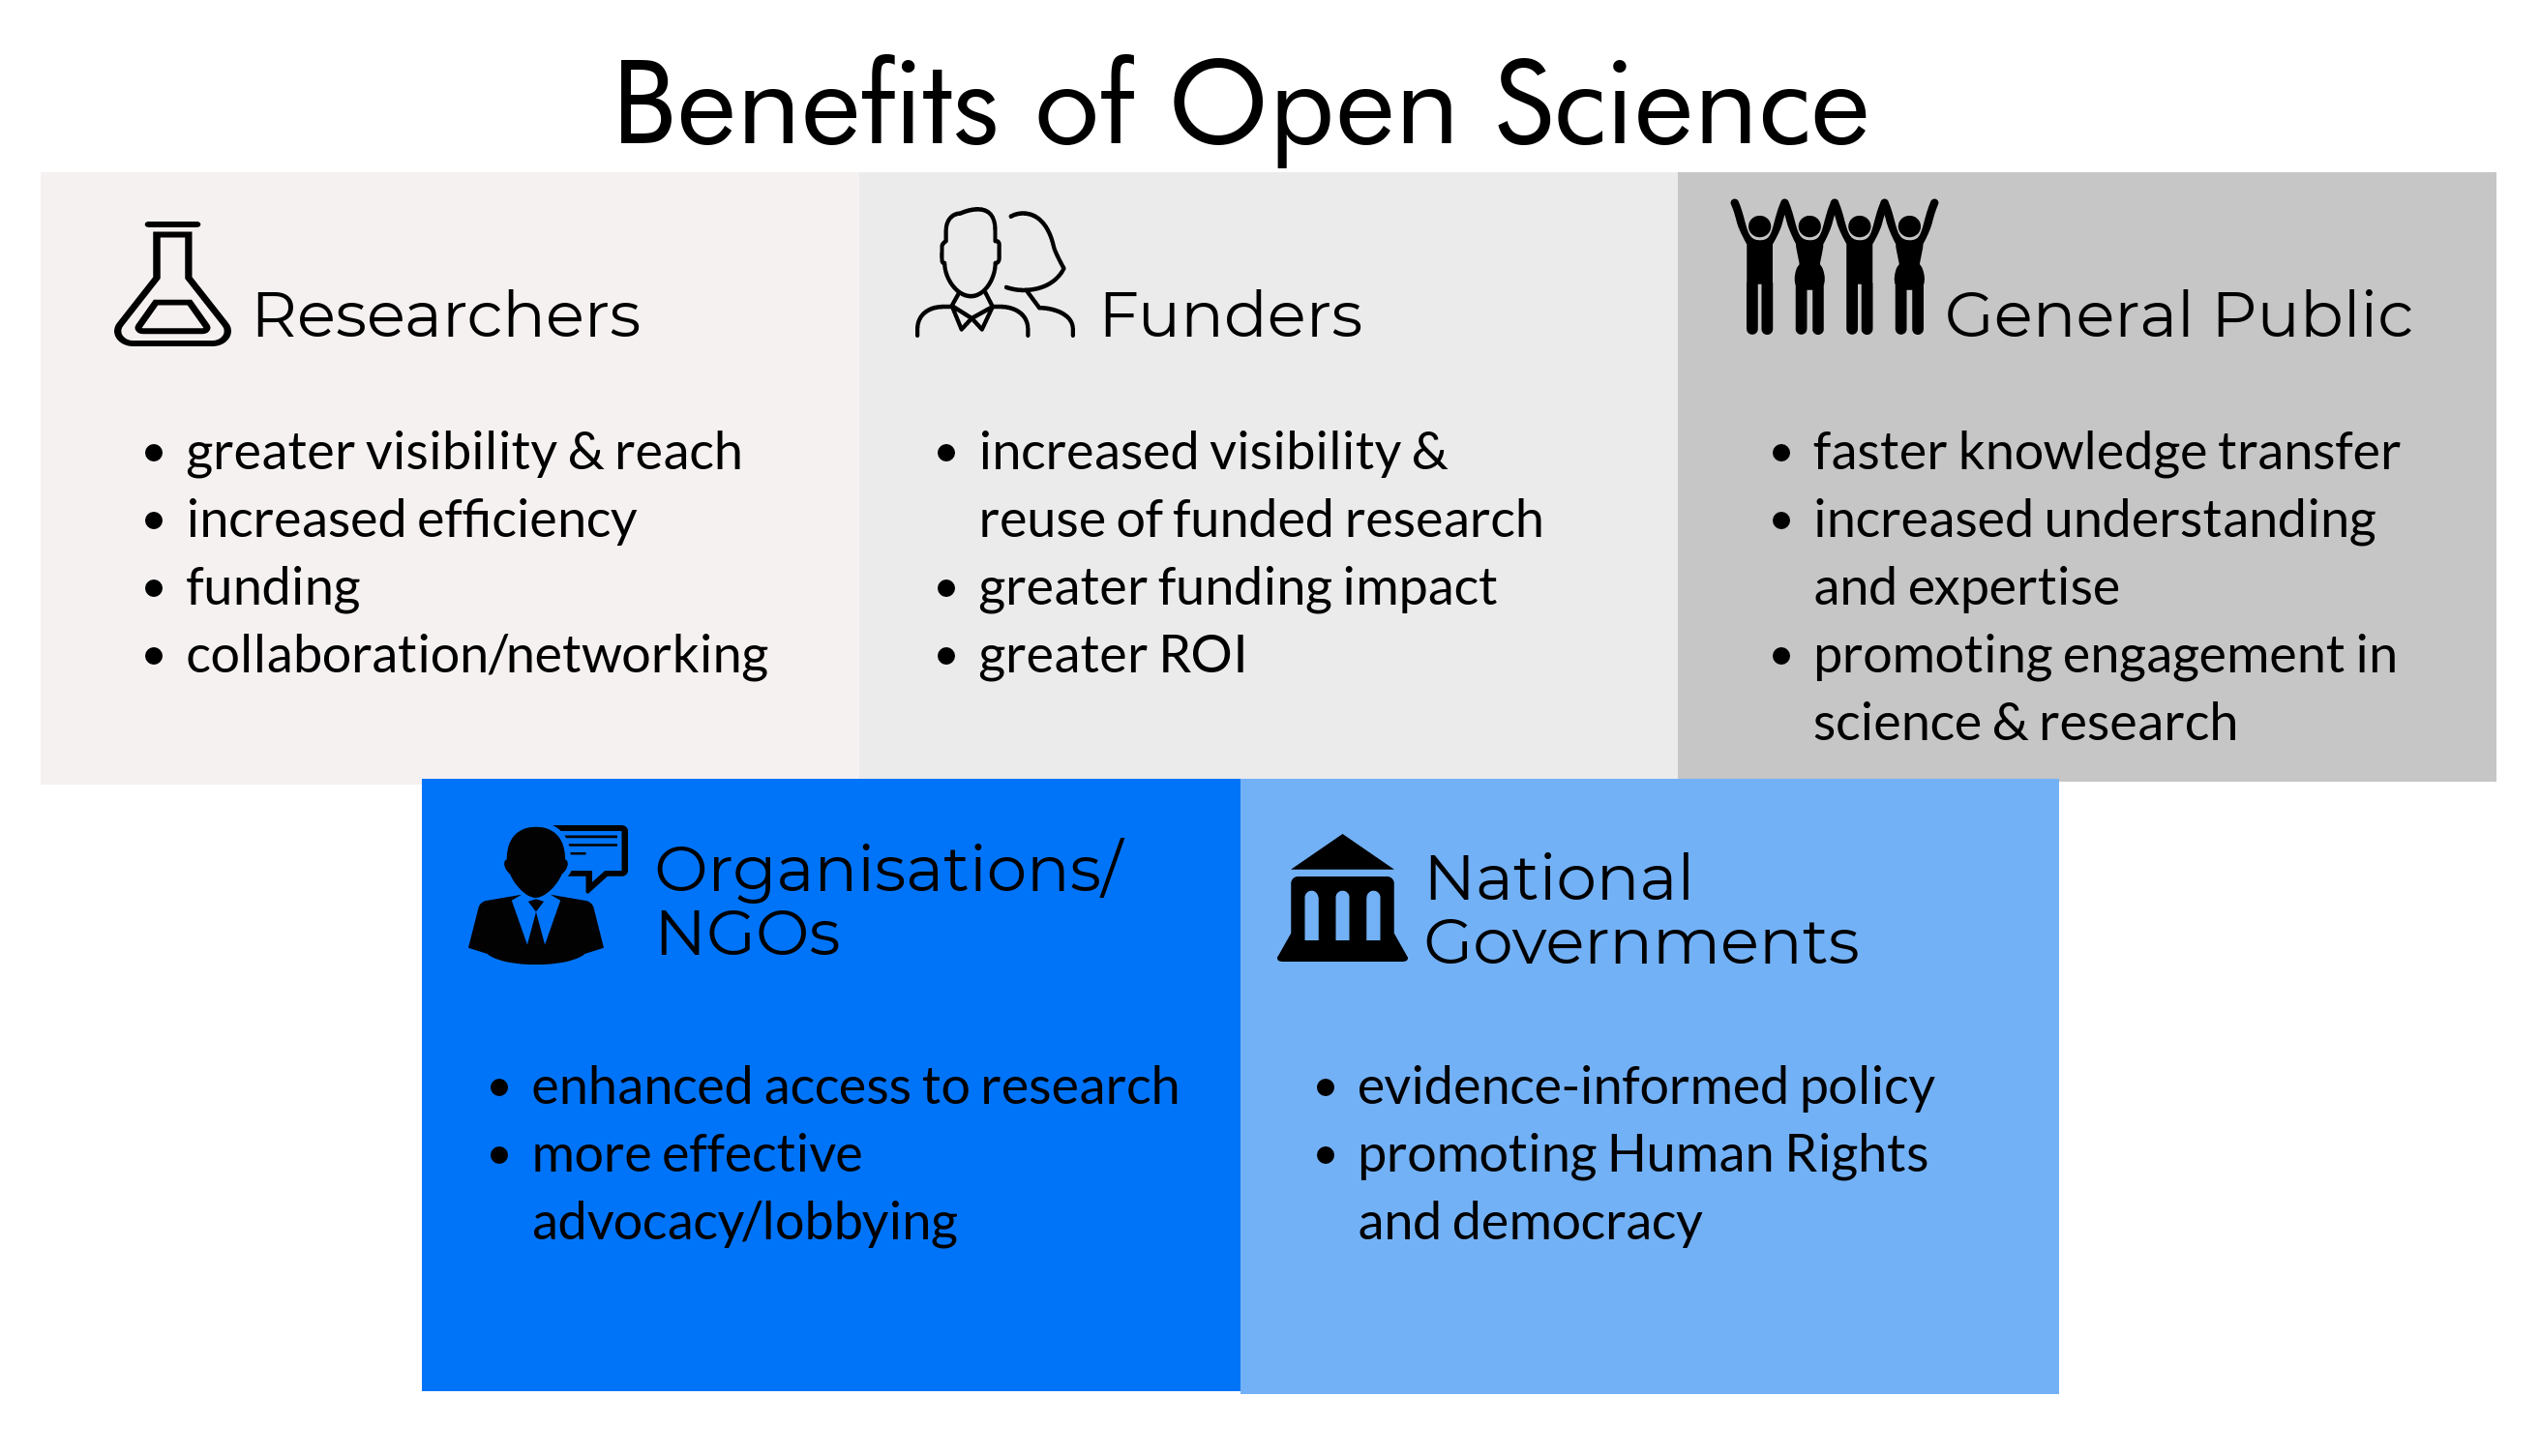 Benefits of Open Science